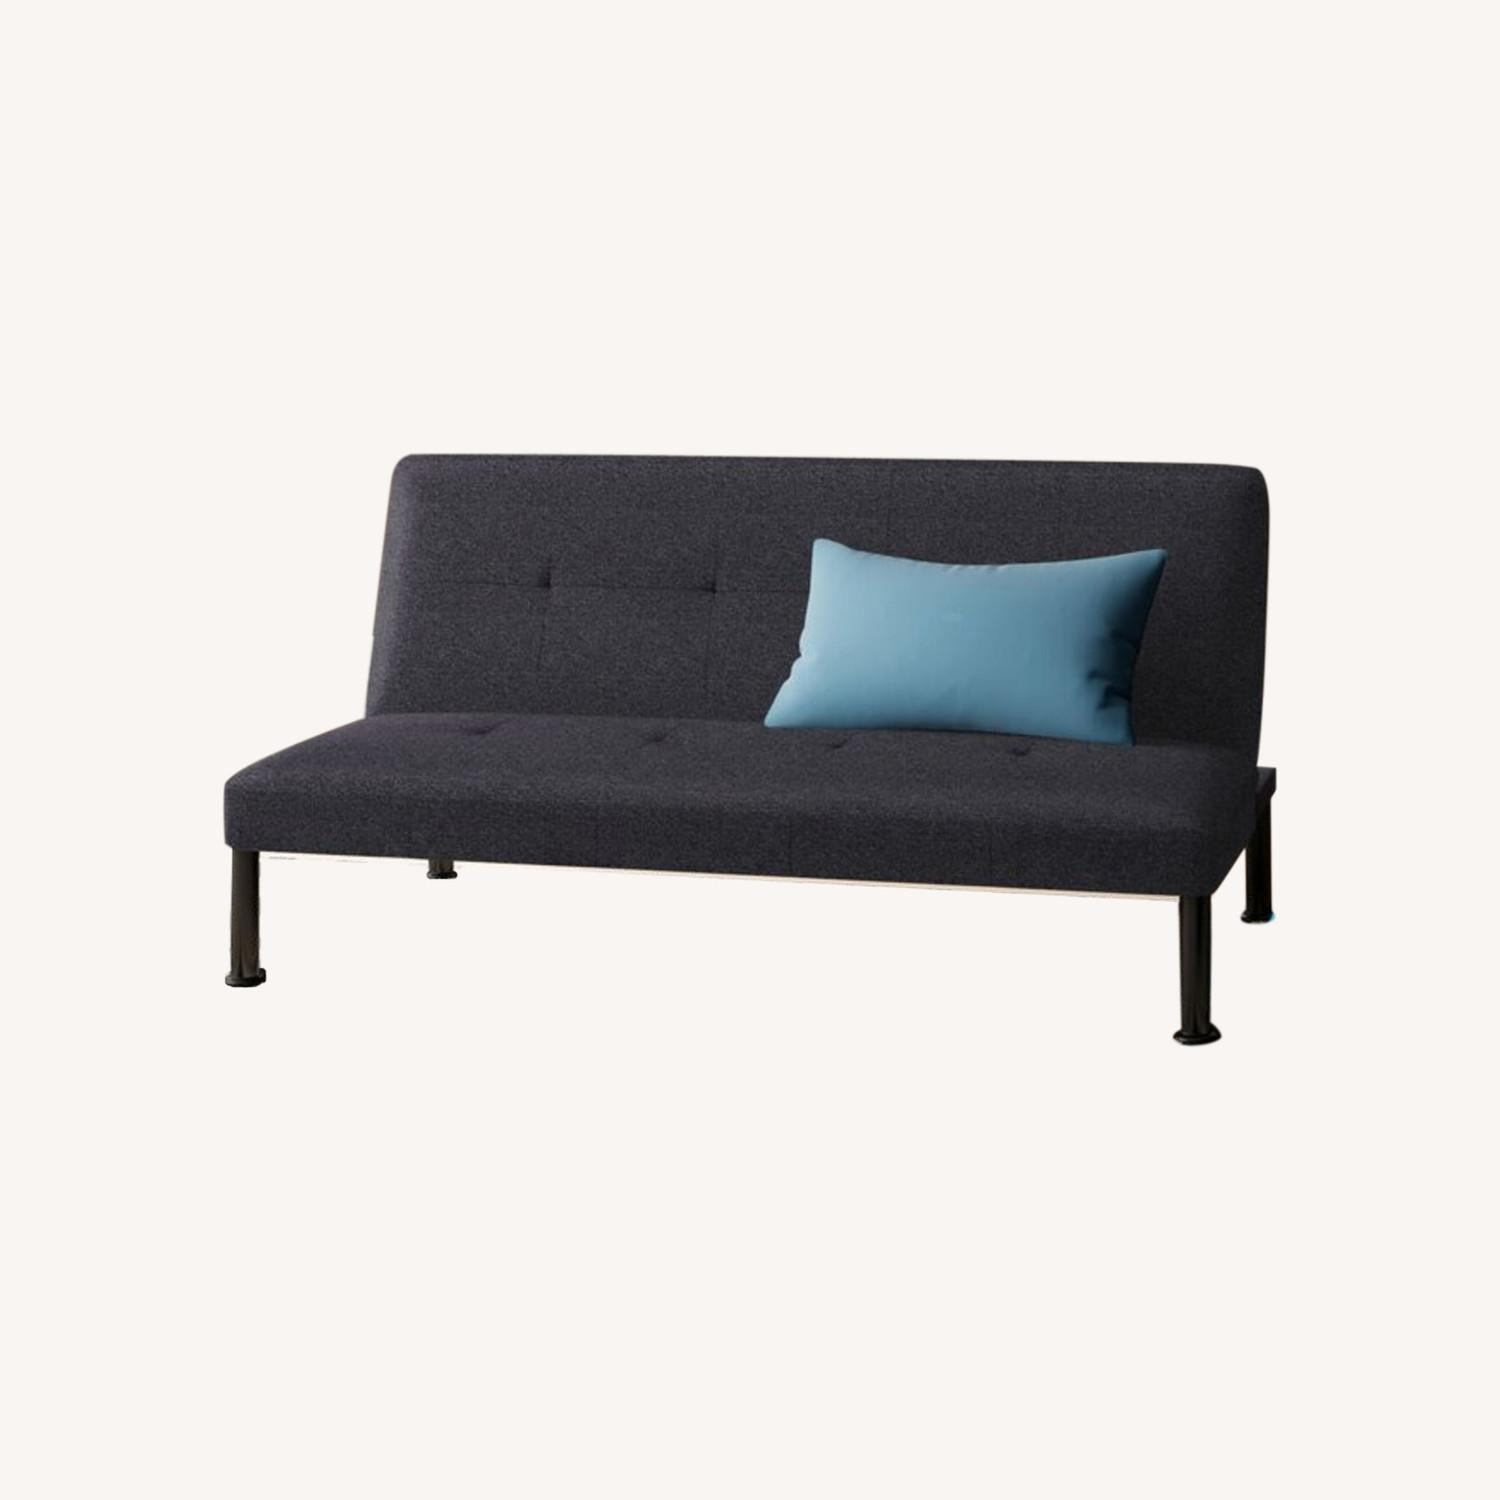 """Wayfair Iselys Twin 64"""" Wide Tight Back Convertible Sofa - image-0"""